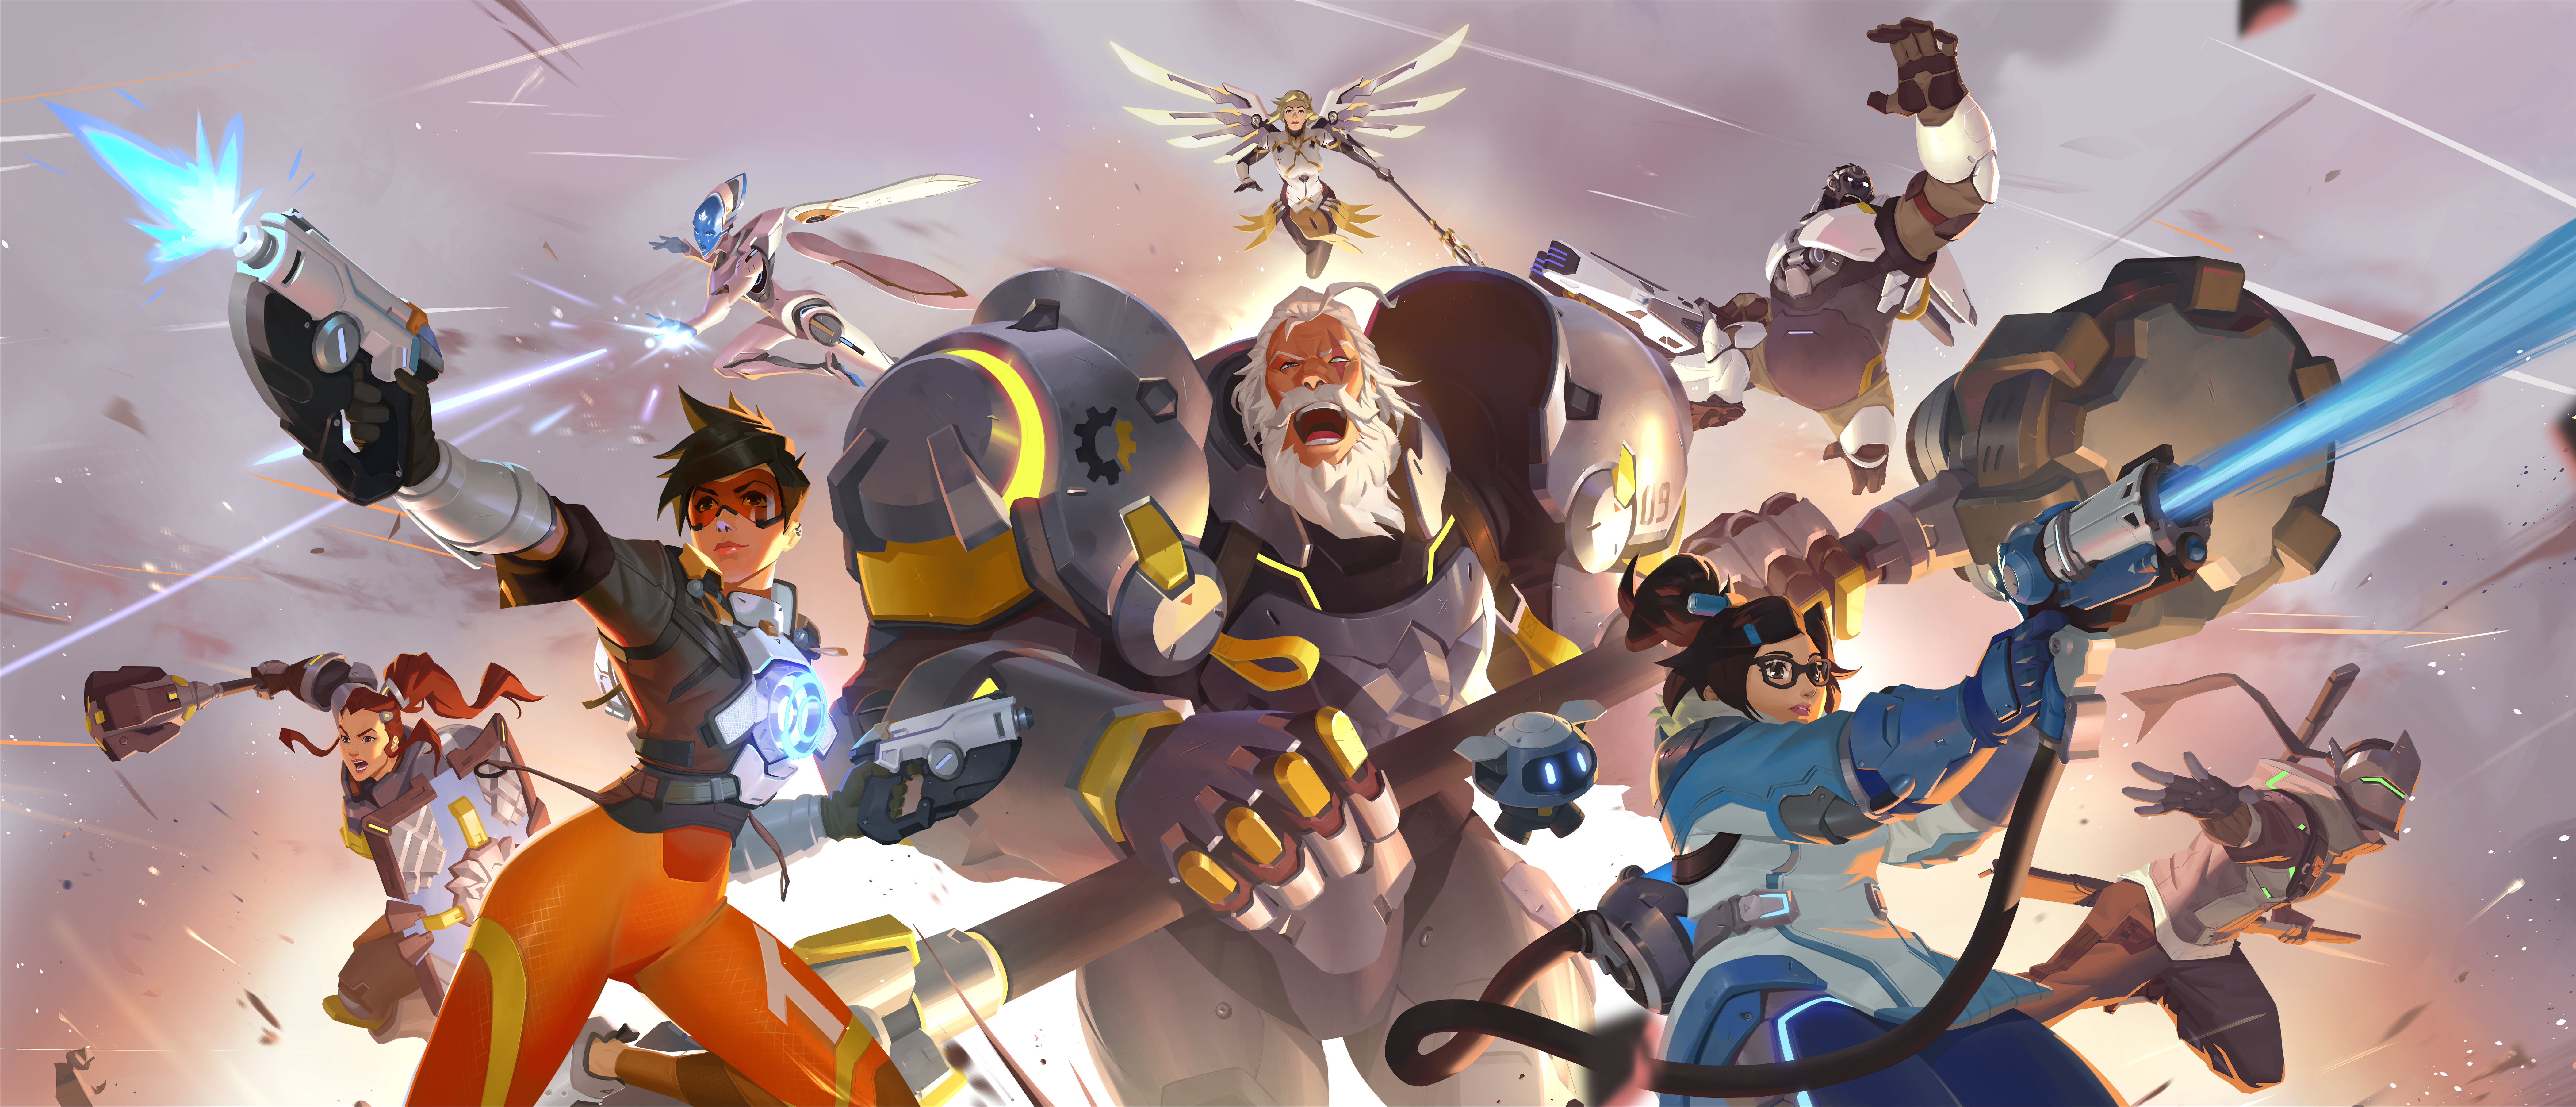 Overwatch 2 4k 8k Wallpaper Hd Games 4k Wallpapers Images